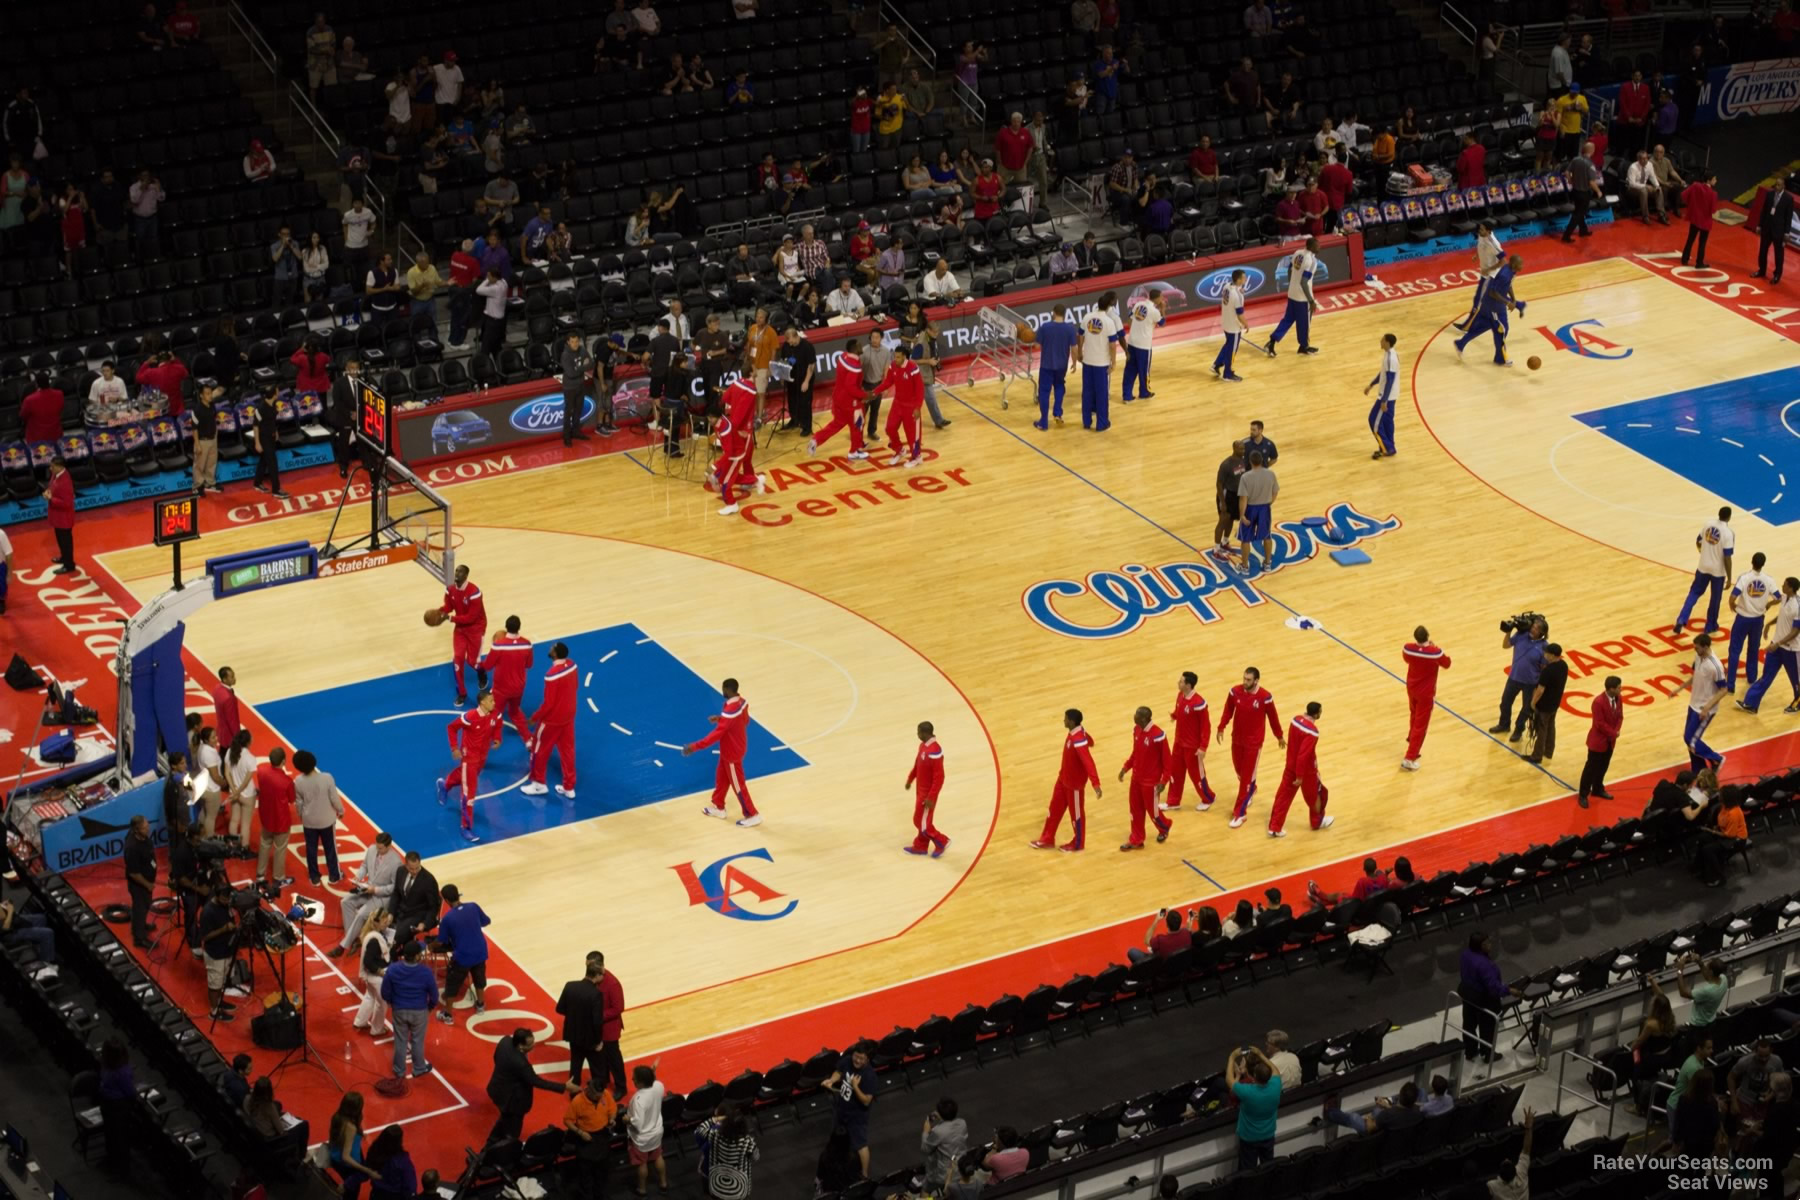 Staples Center Section 321 Clippers Lakers